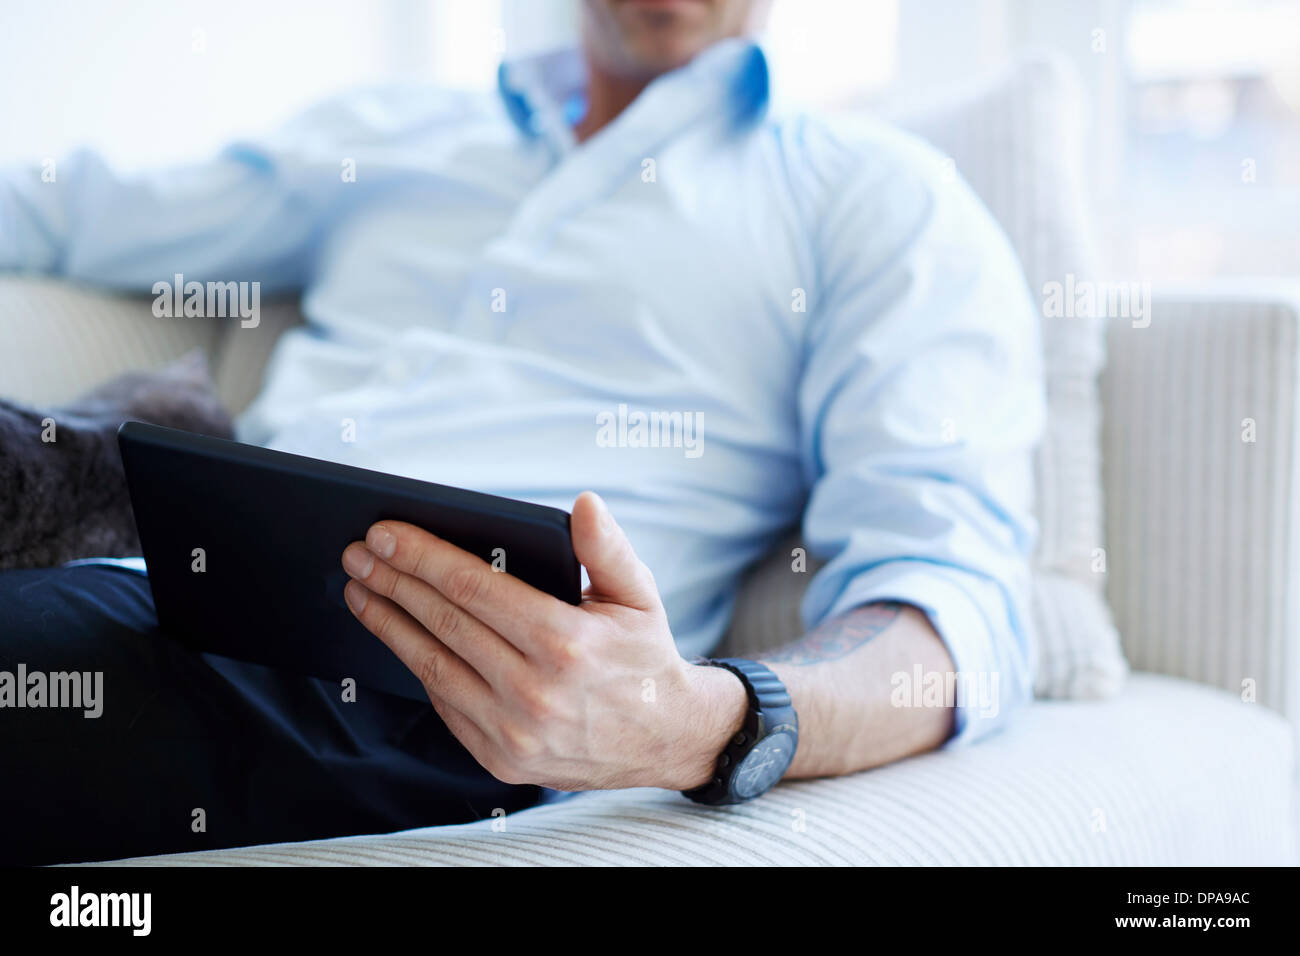 Cropped shot of man's midsection holding digital tablet Photo Stock